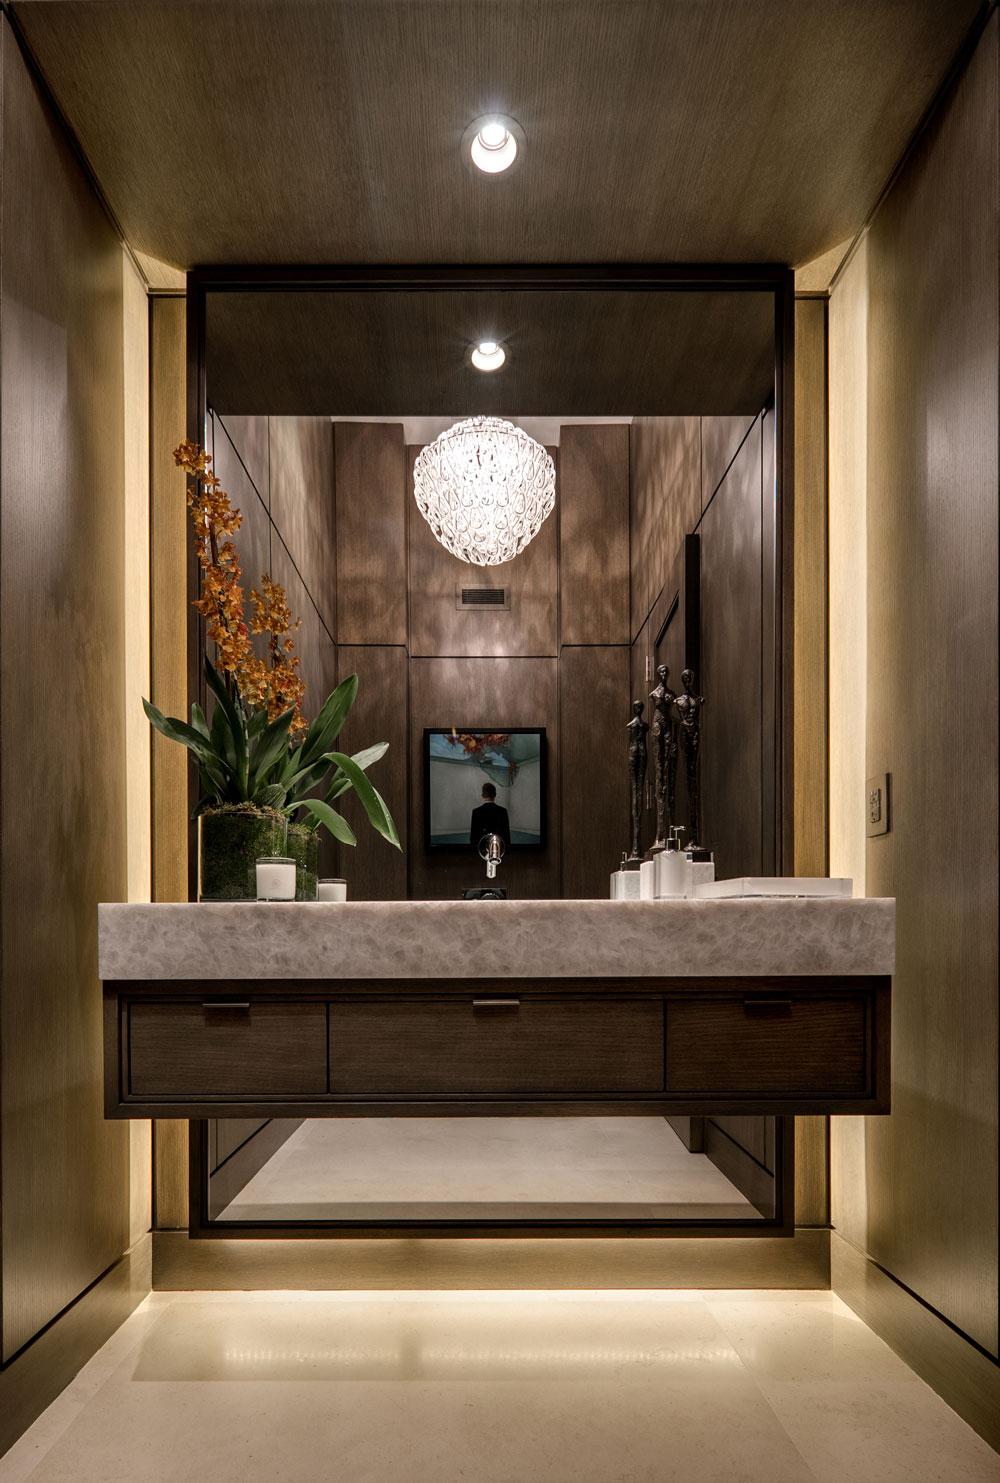 Sleek-Modern-Powder-Room-Floating-Vanity-Marble-Corbin-Reeves.jpg